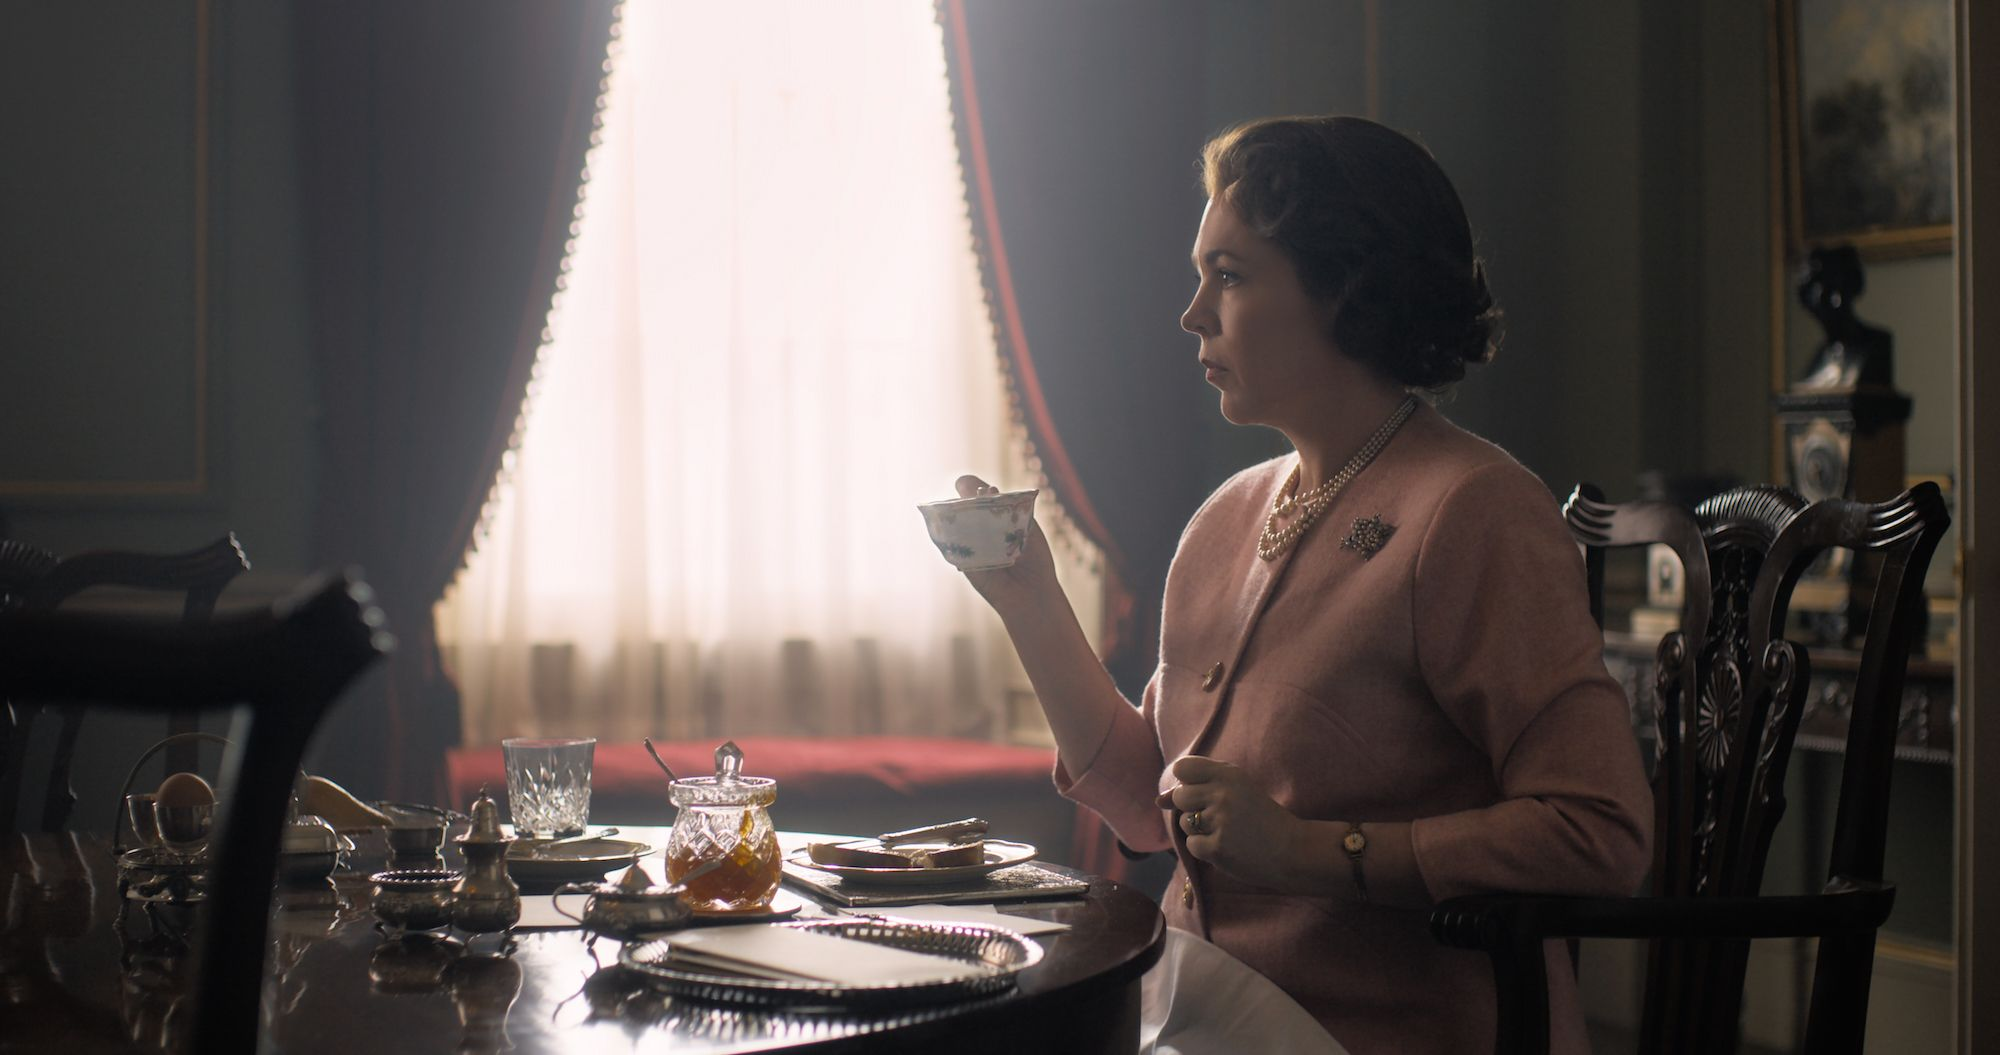 Serie tv 2019, The crown